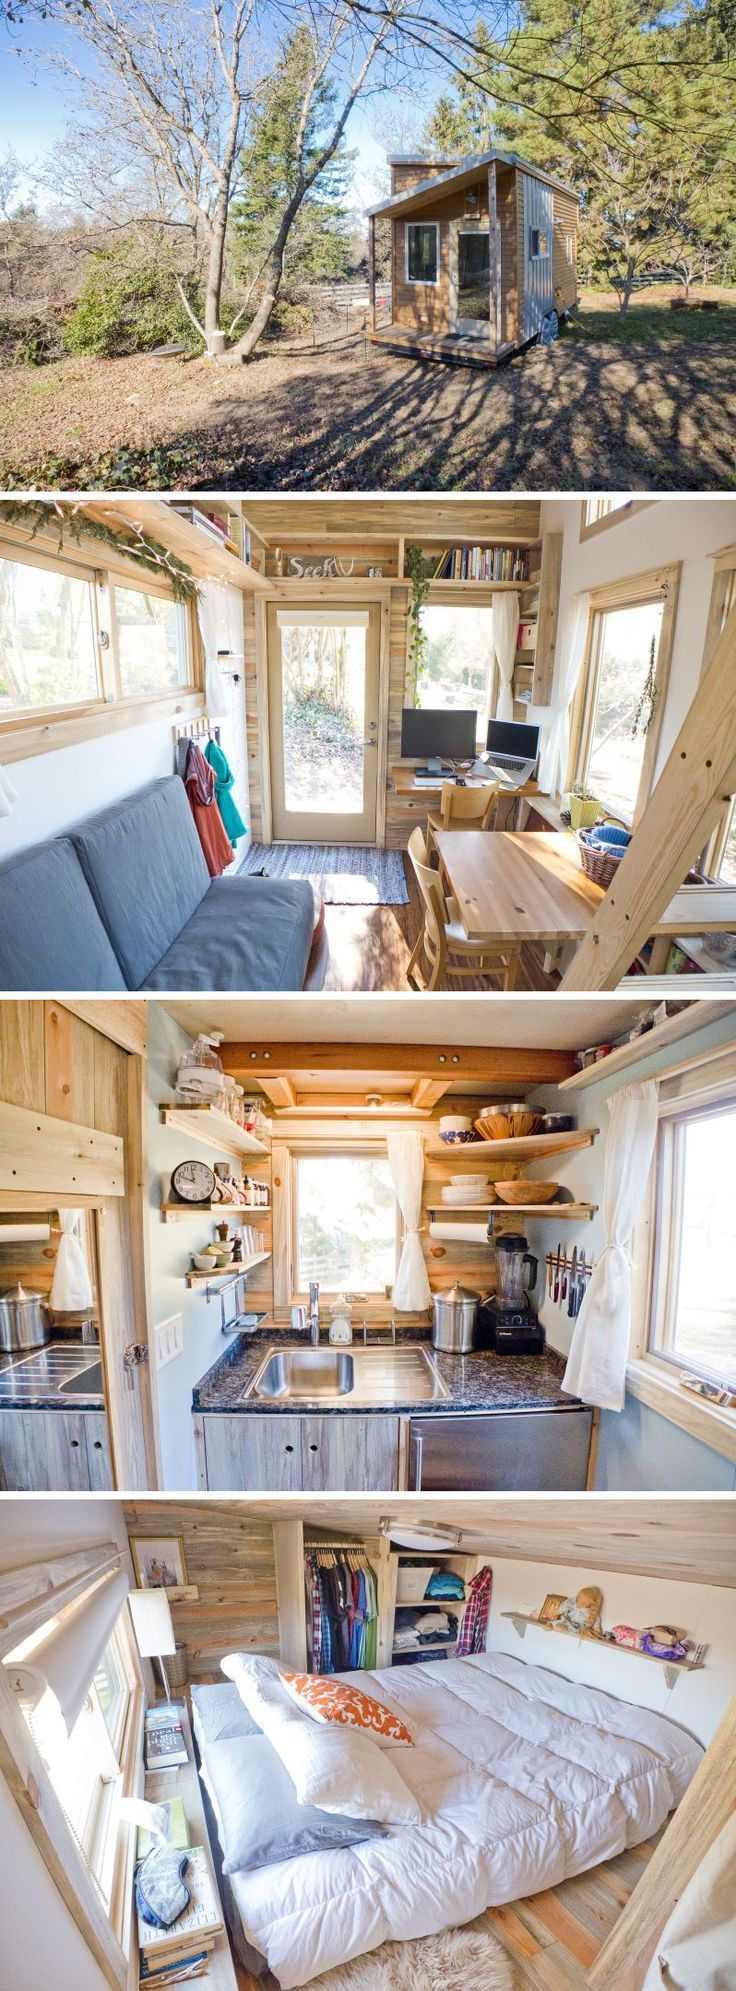 I Remember Falling In Love With The Idea Of Living A Tiny House Last Christmas While Back Michigan Was Watching Tv My Mom And Sister